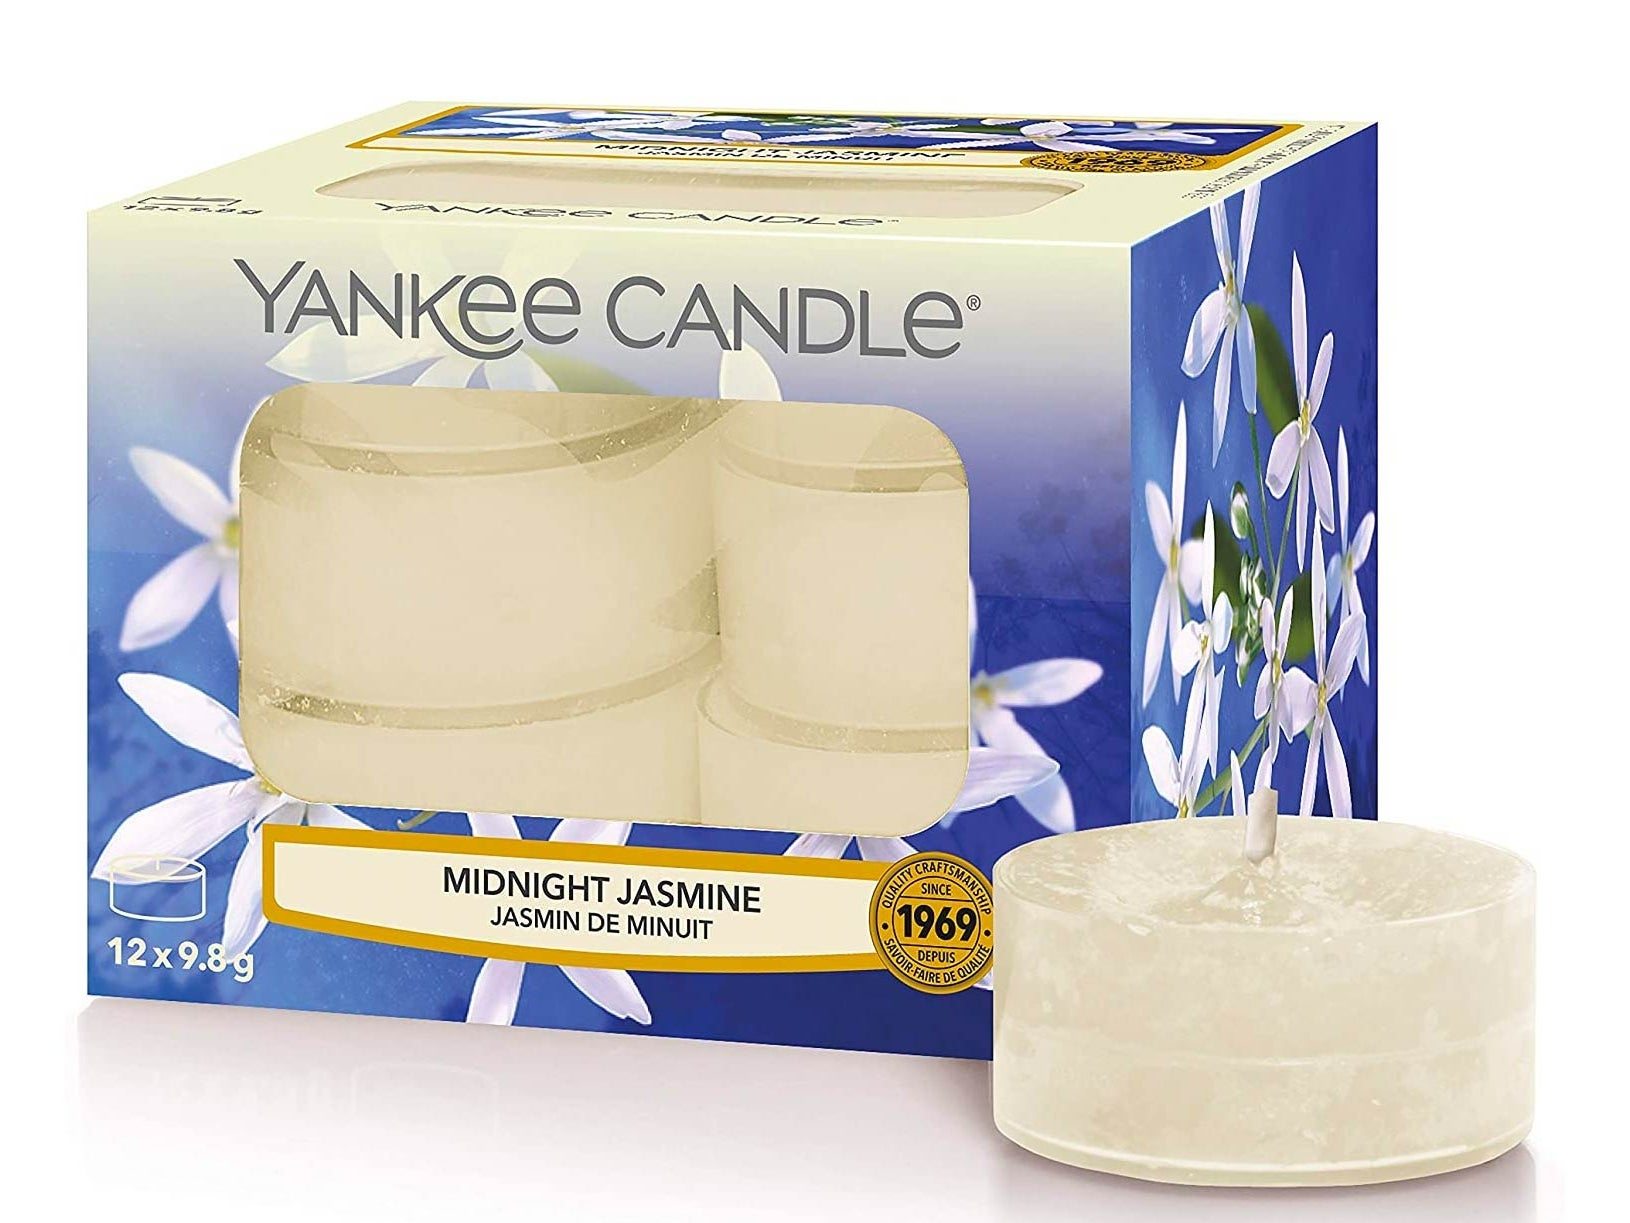 Yankee Candle Tea Light Scented Candles Midnight Jasmine